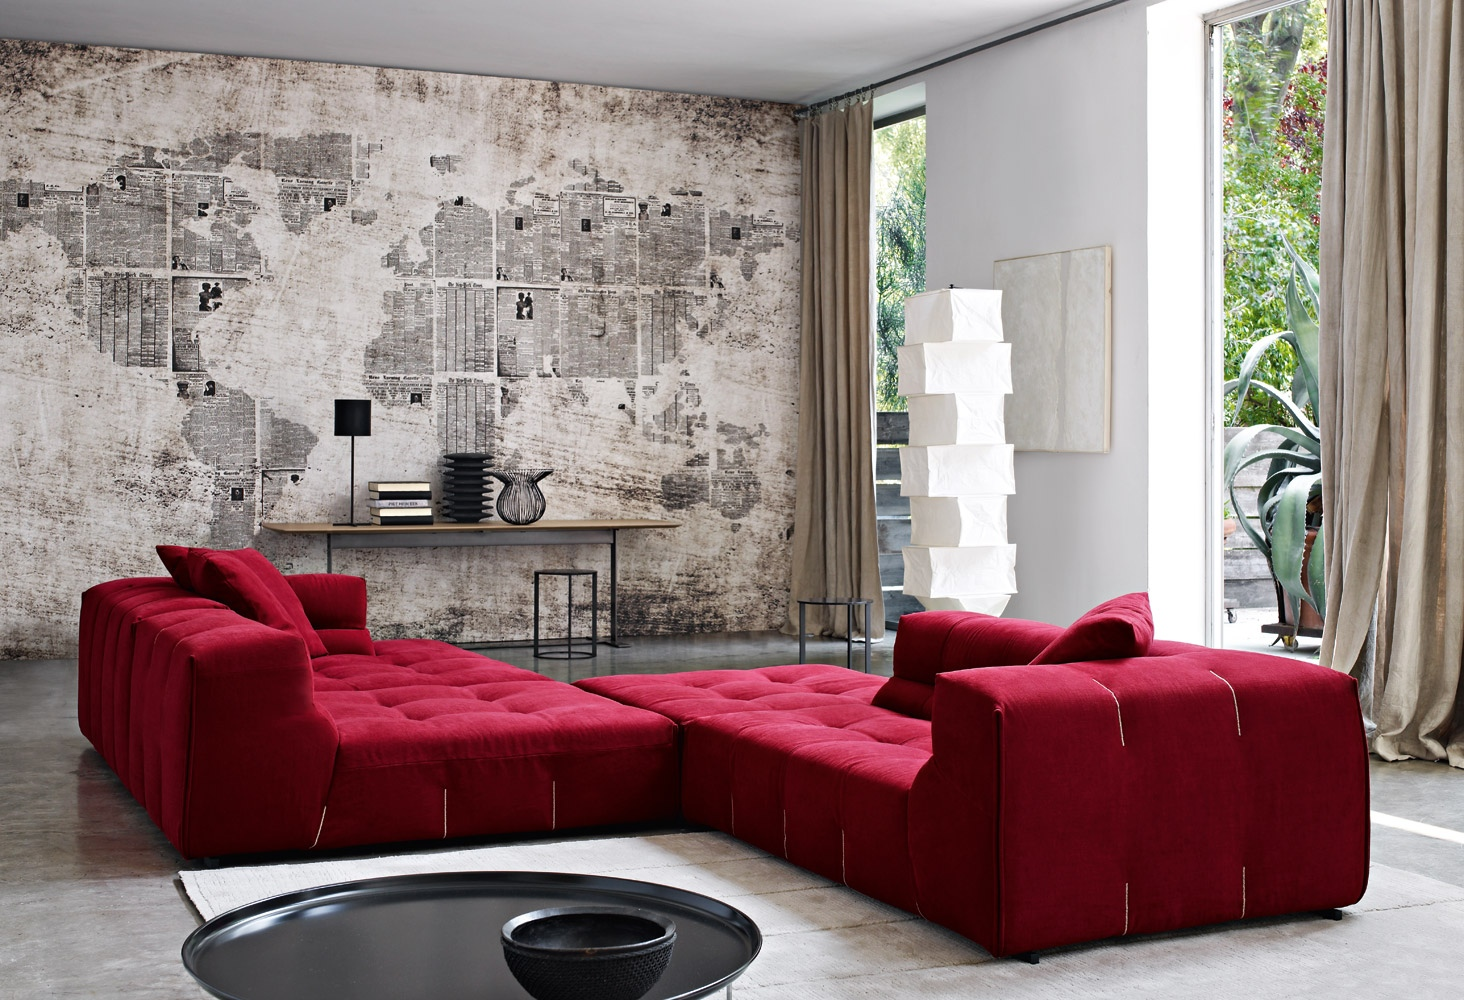 Living Room Decorating Ideas With Red Couch Red Chaise Lounge Interior Design Ideas